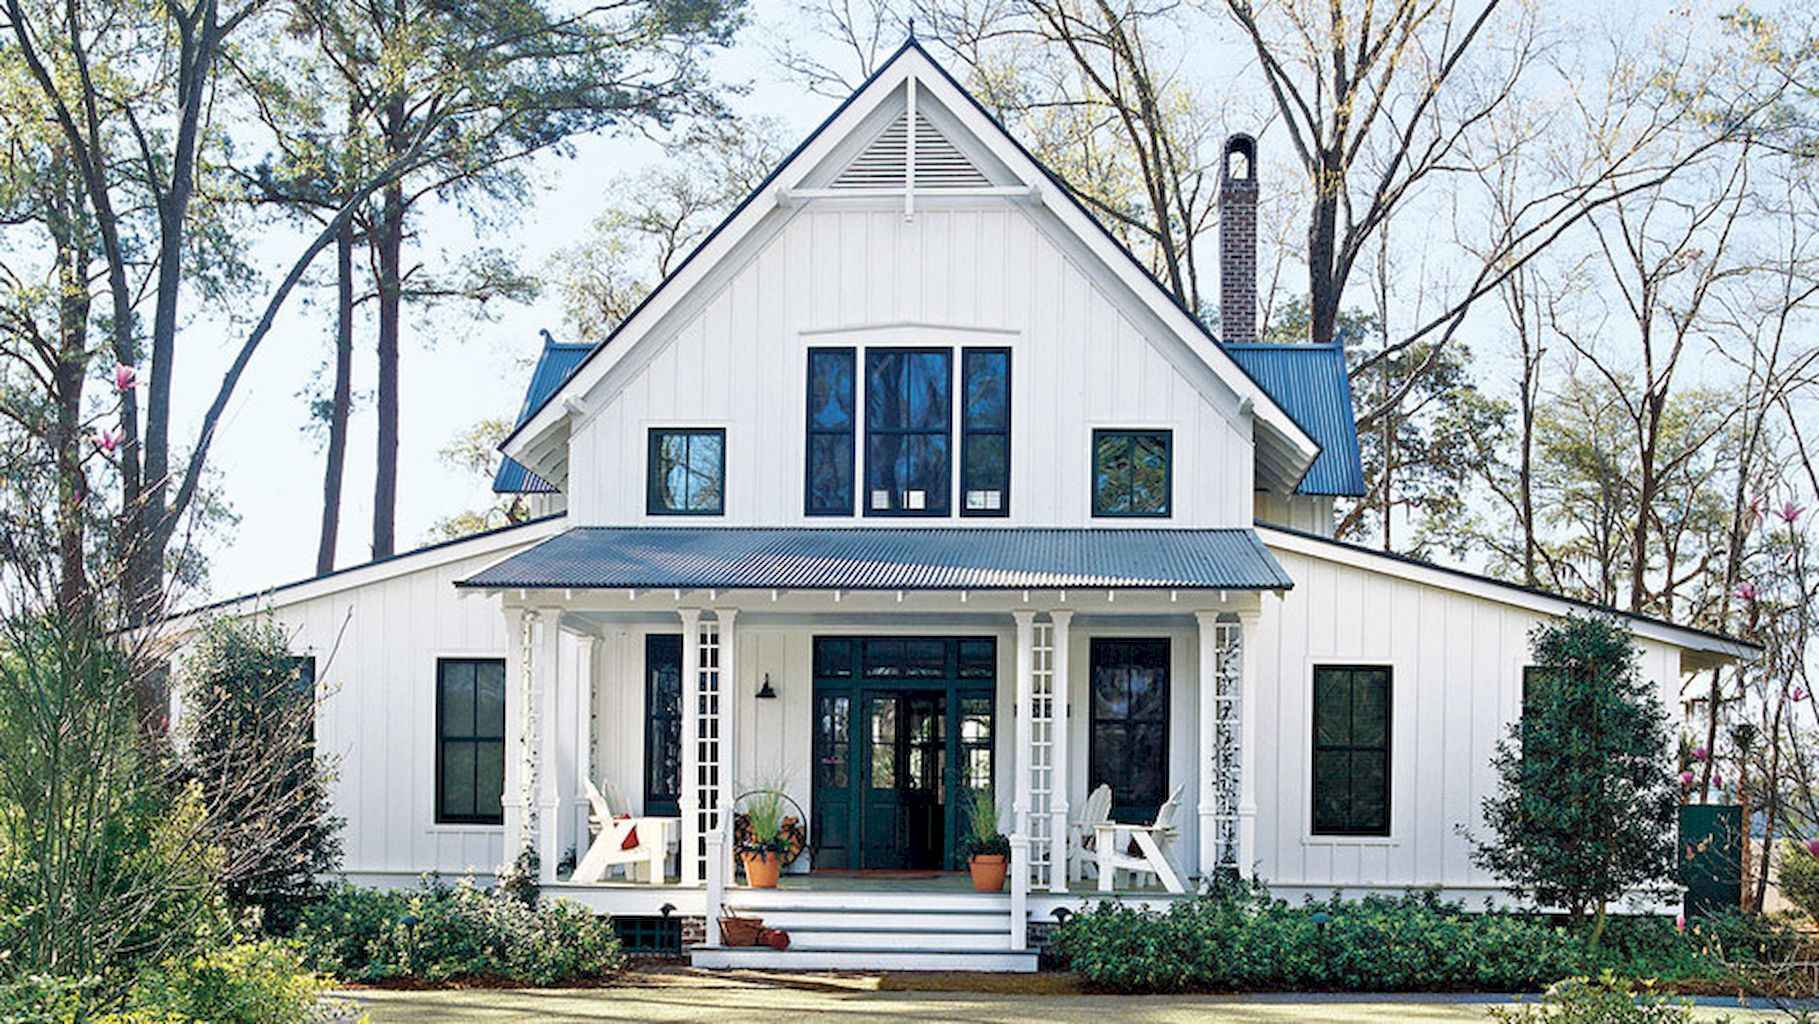 60 Awesome Farmhouse Plans Cracker Style Design Ideas (52)